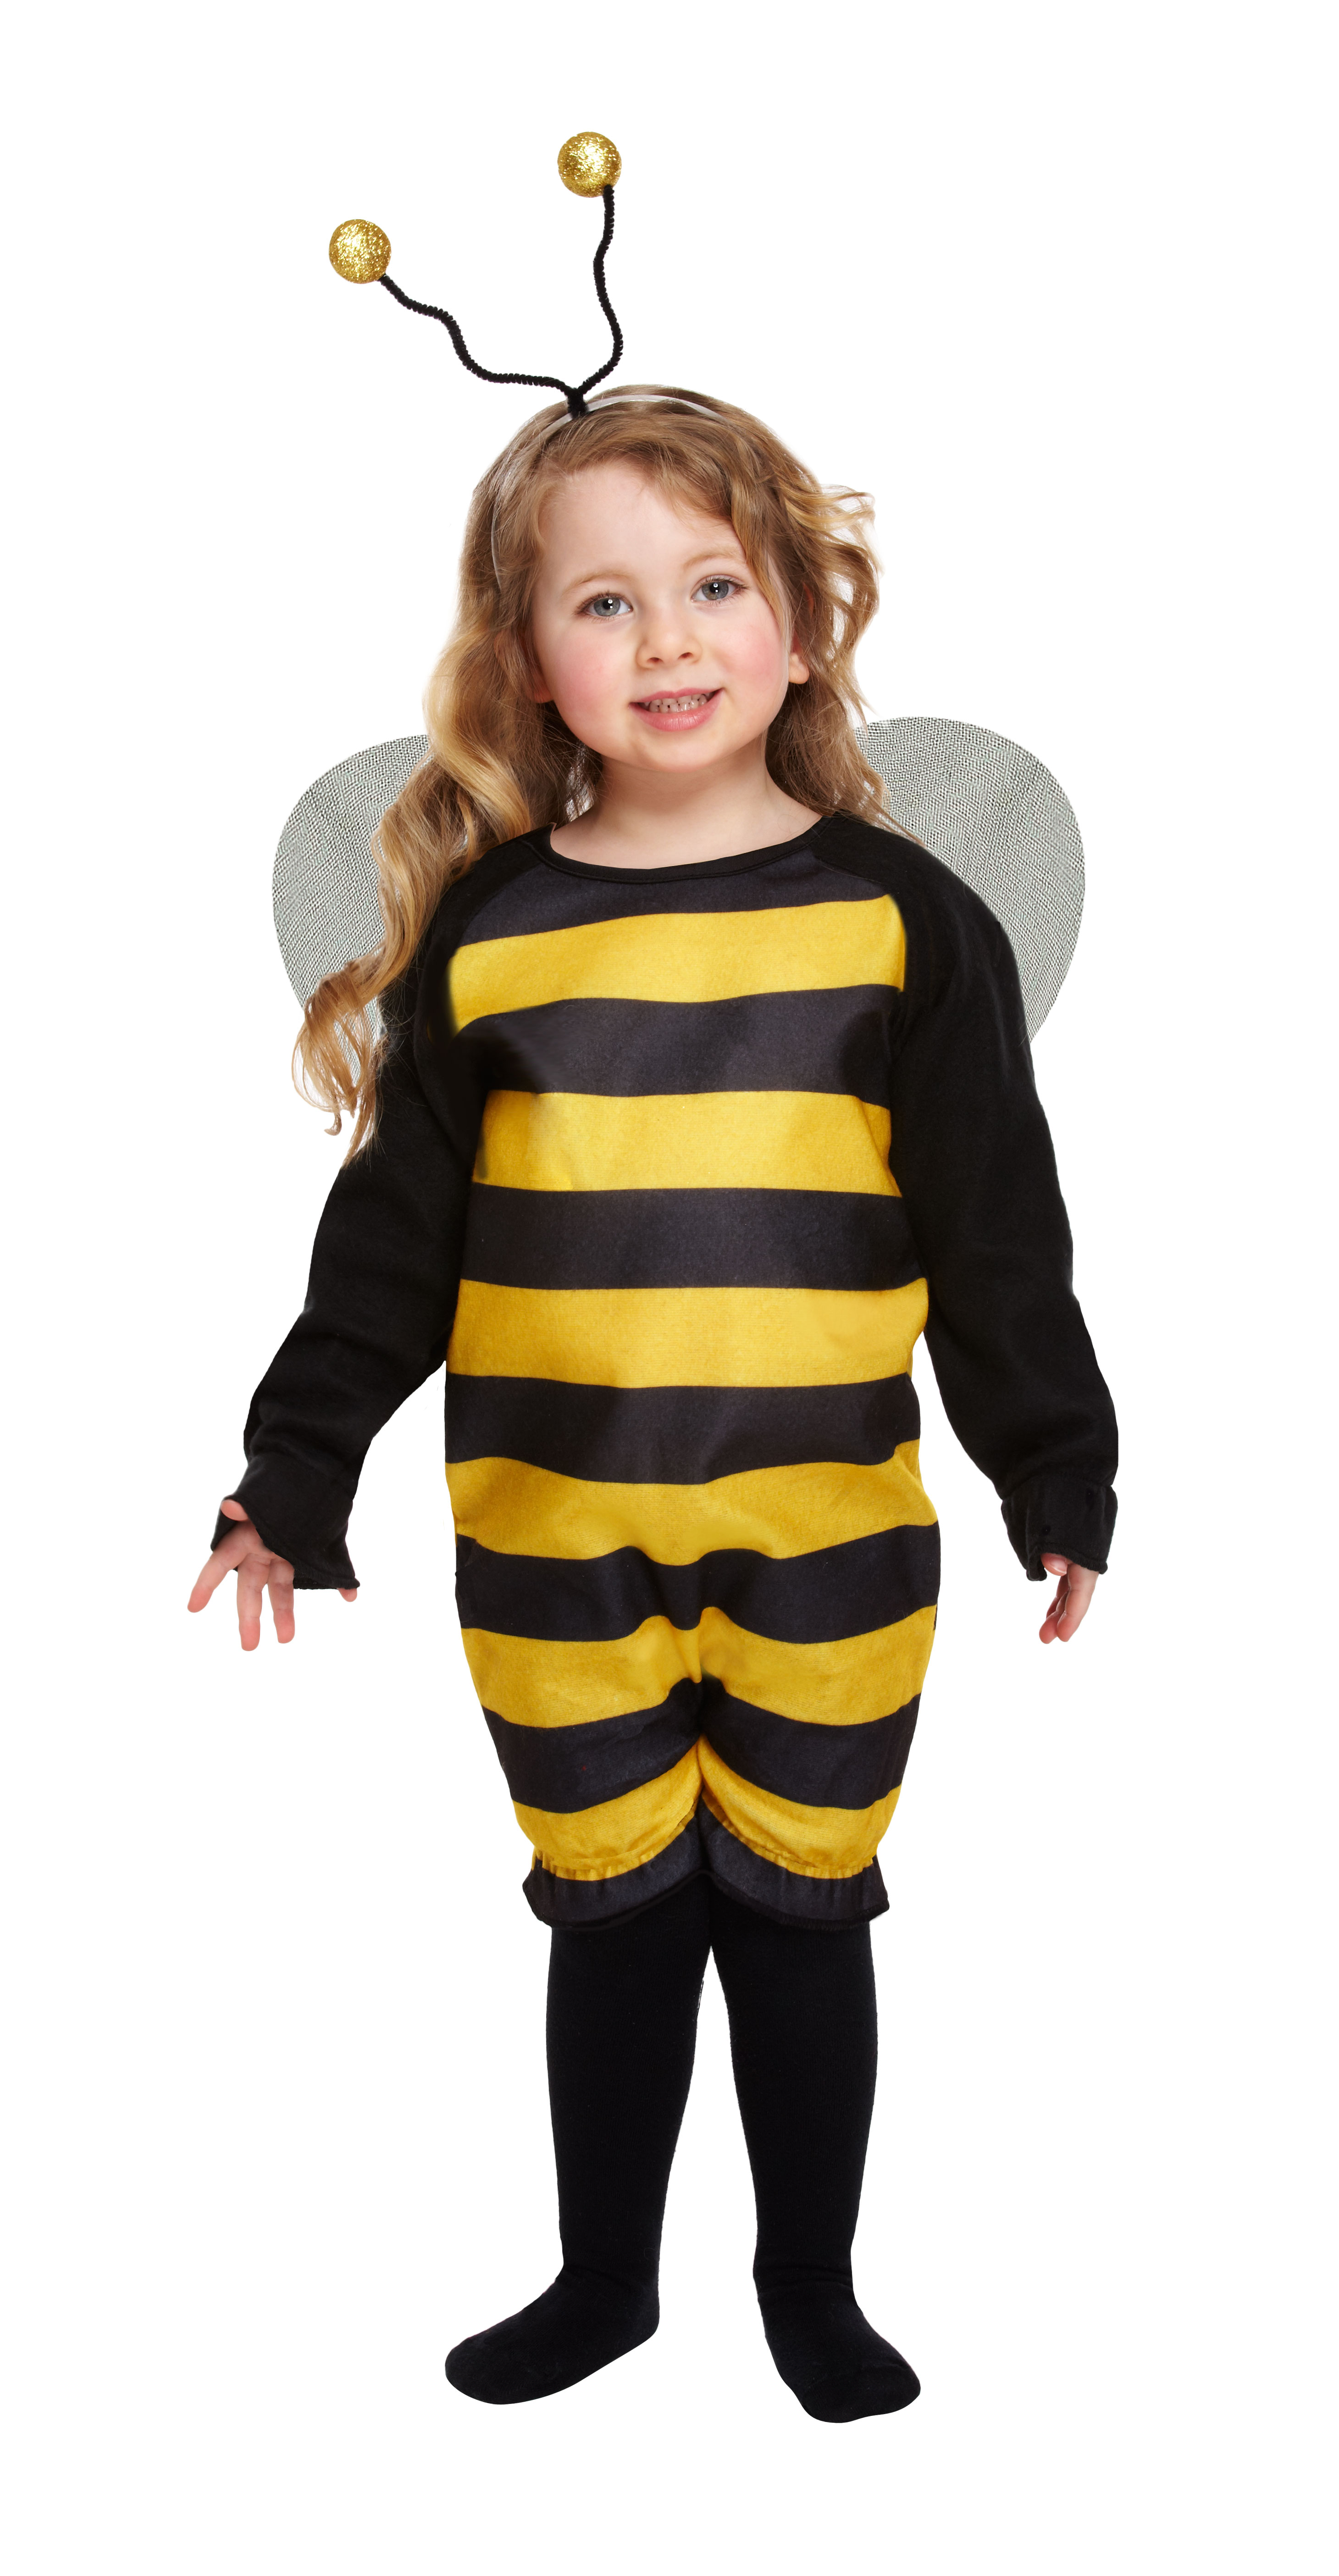 Sentinel Ladybug or Bee Toddlers Fancy Dress Animal Insect Girls Boys Costume 2 - 3 Years  sc 1 st  eBay & Ladybug or Bee Toddlers Fancy Dress Animal Insect Girls Boys Costume ...